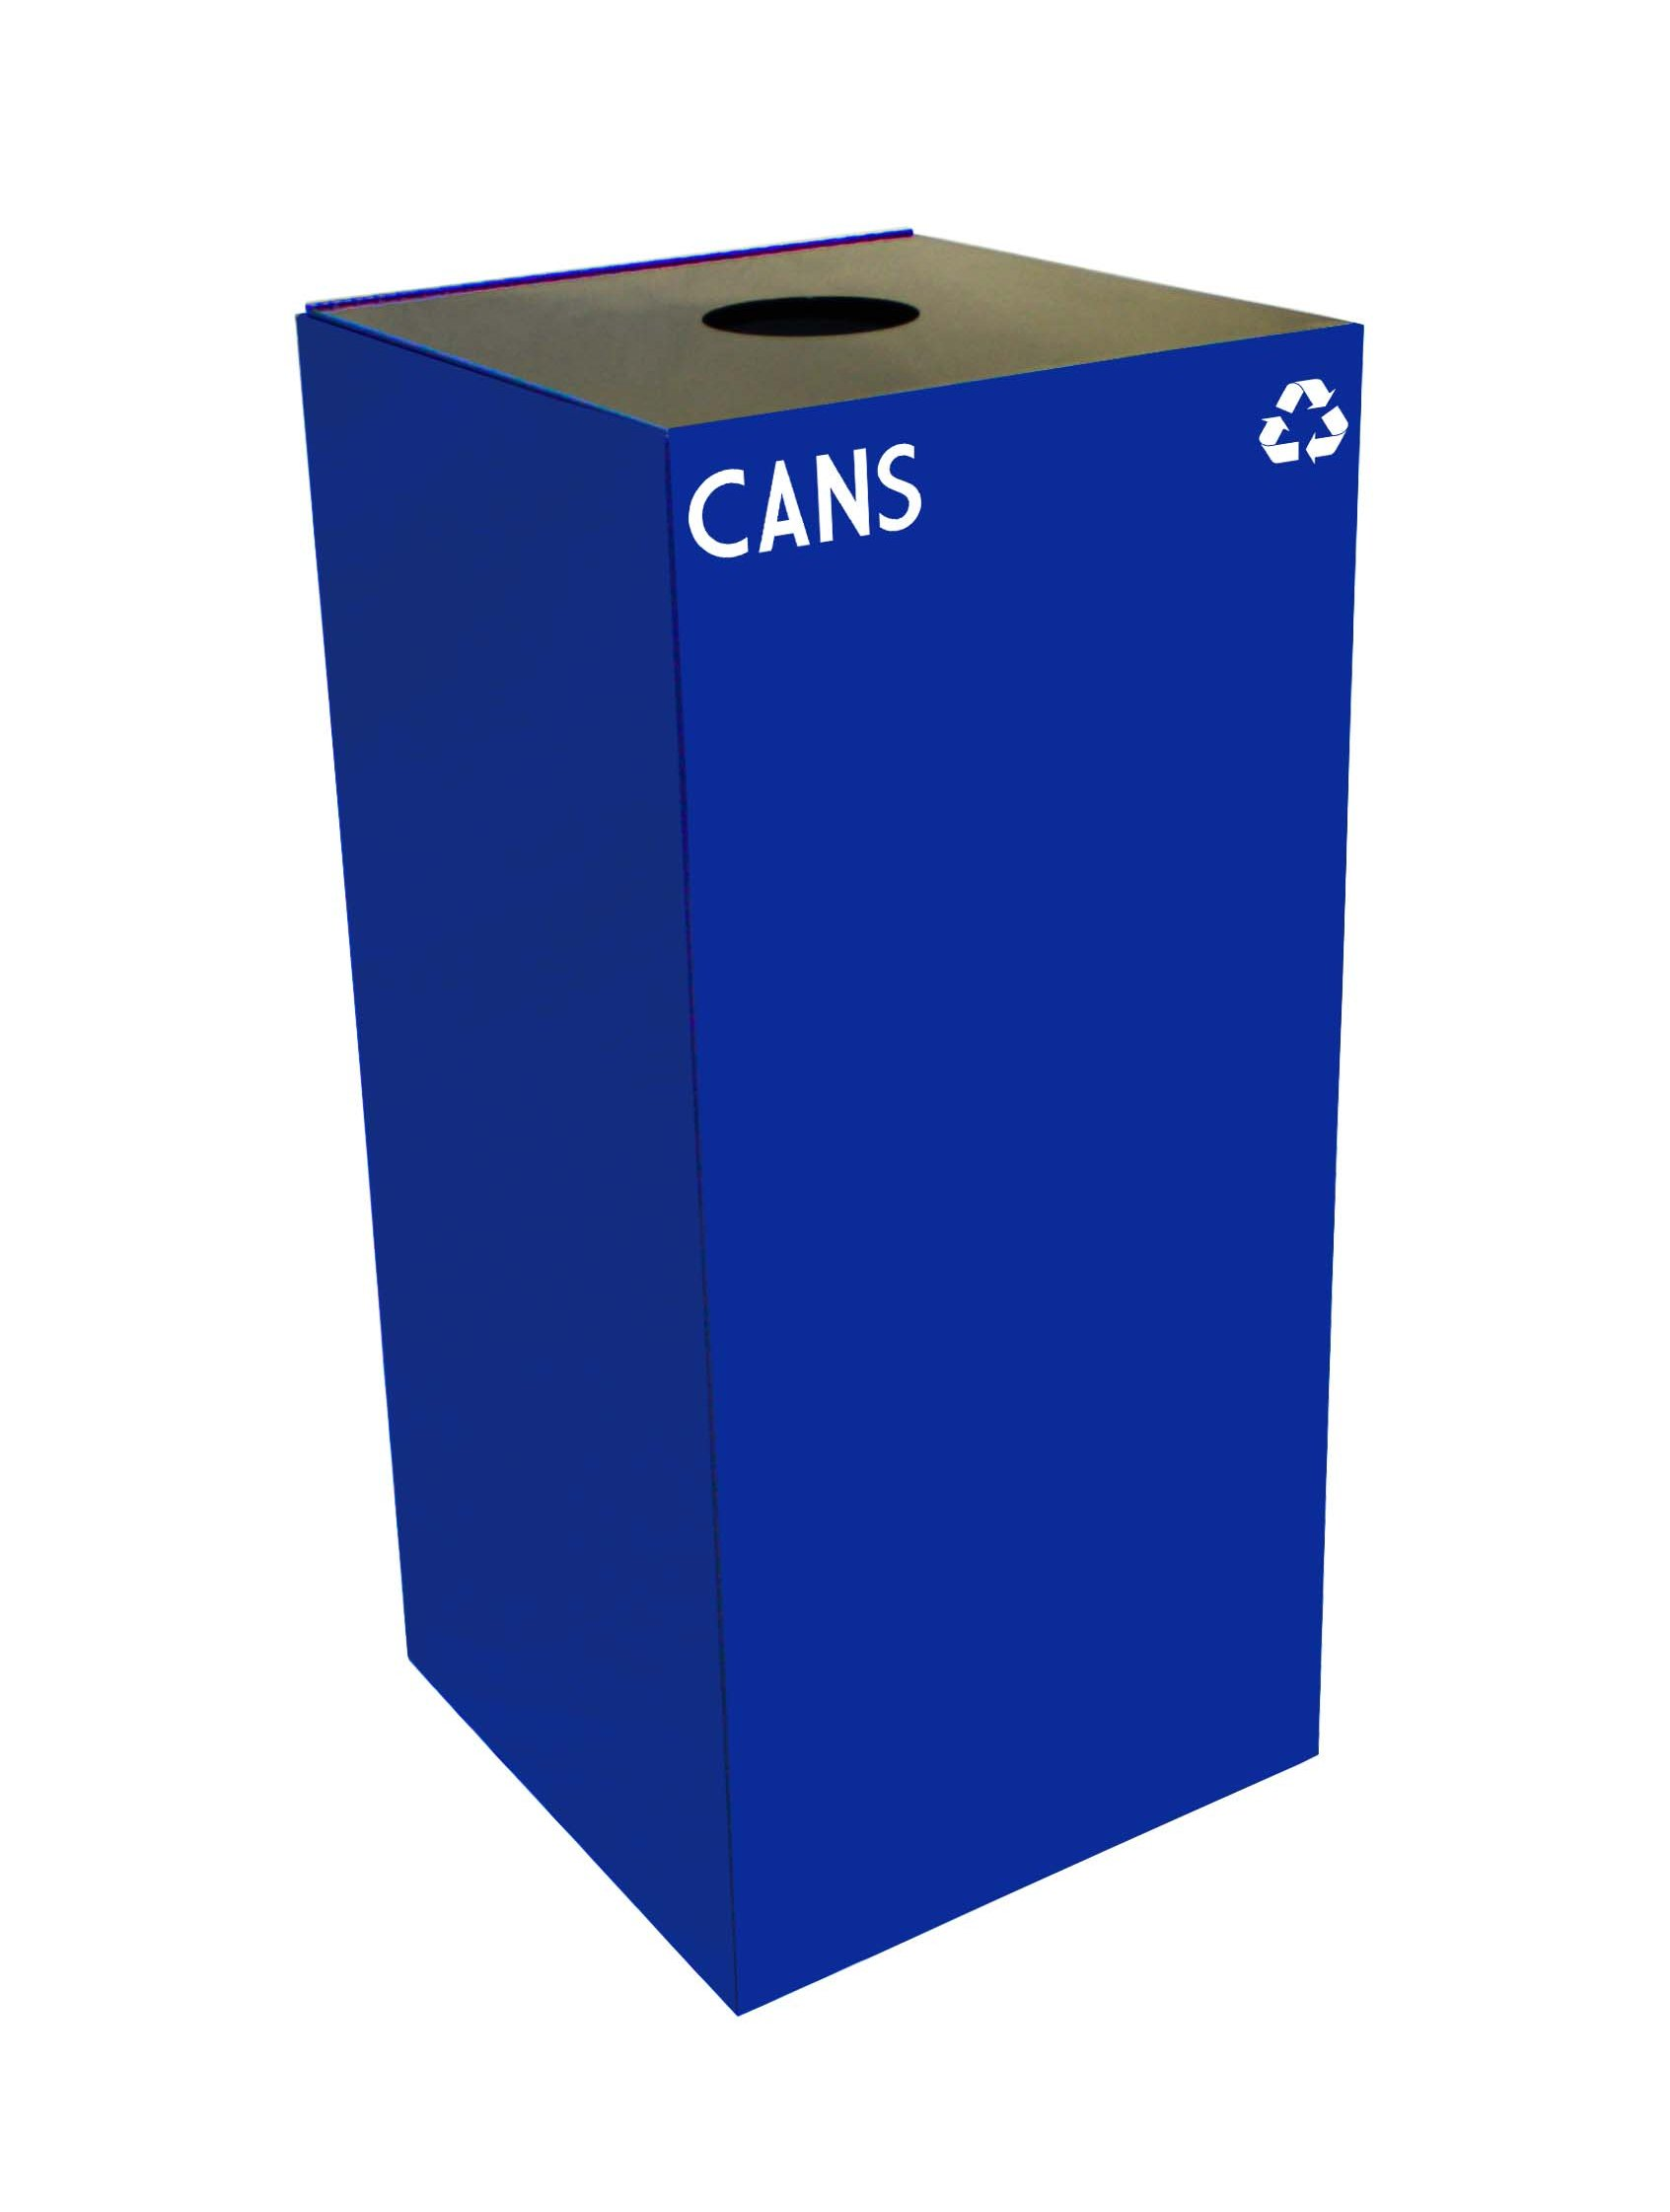 Square Recycling Cans Container